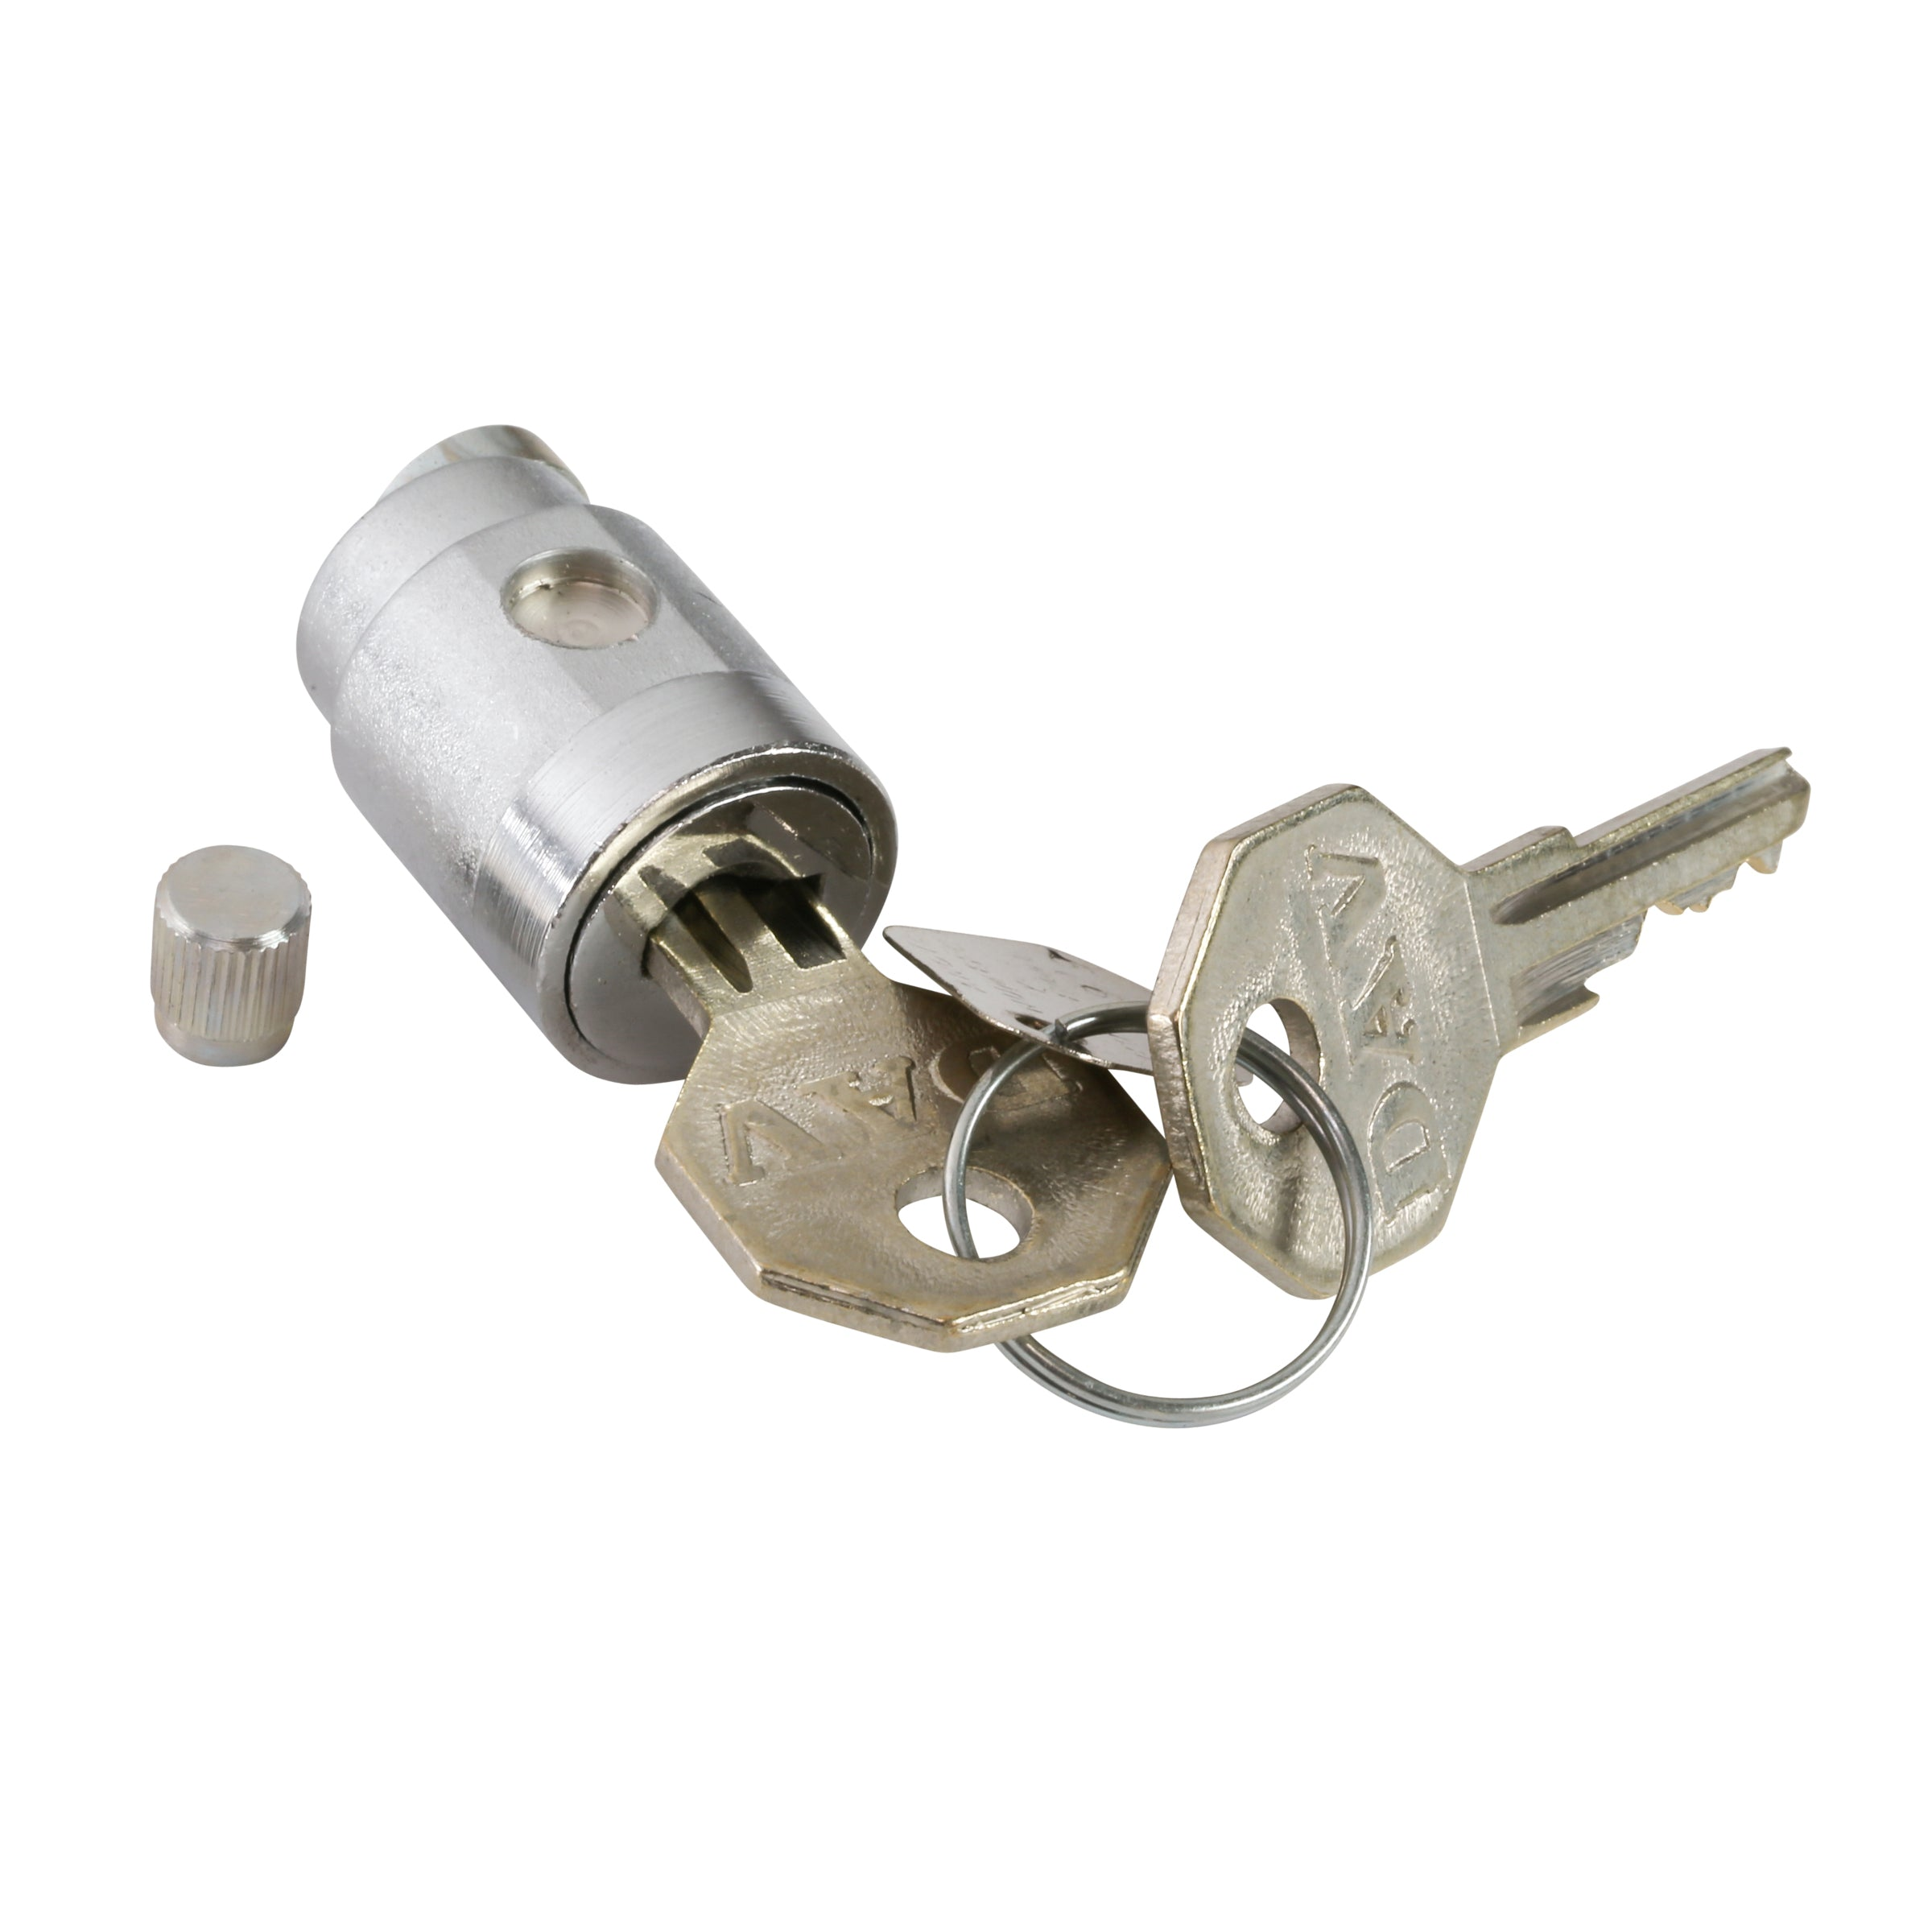 Ignition Cylinder with Keys • 1935-48